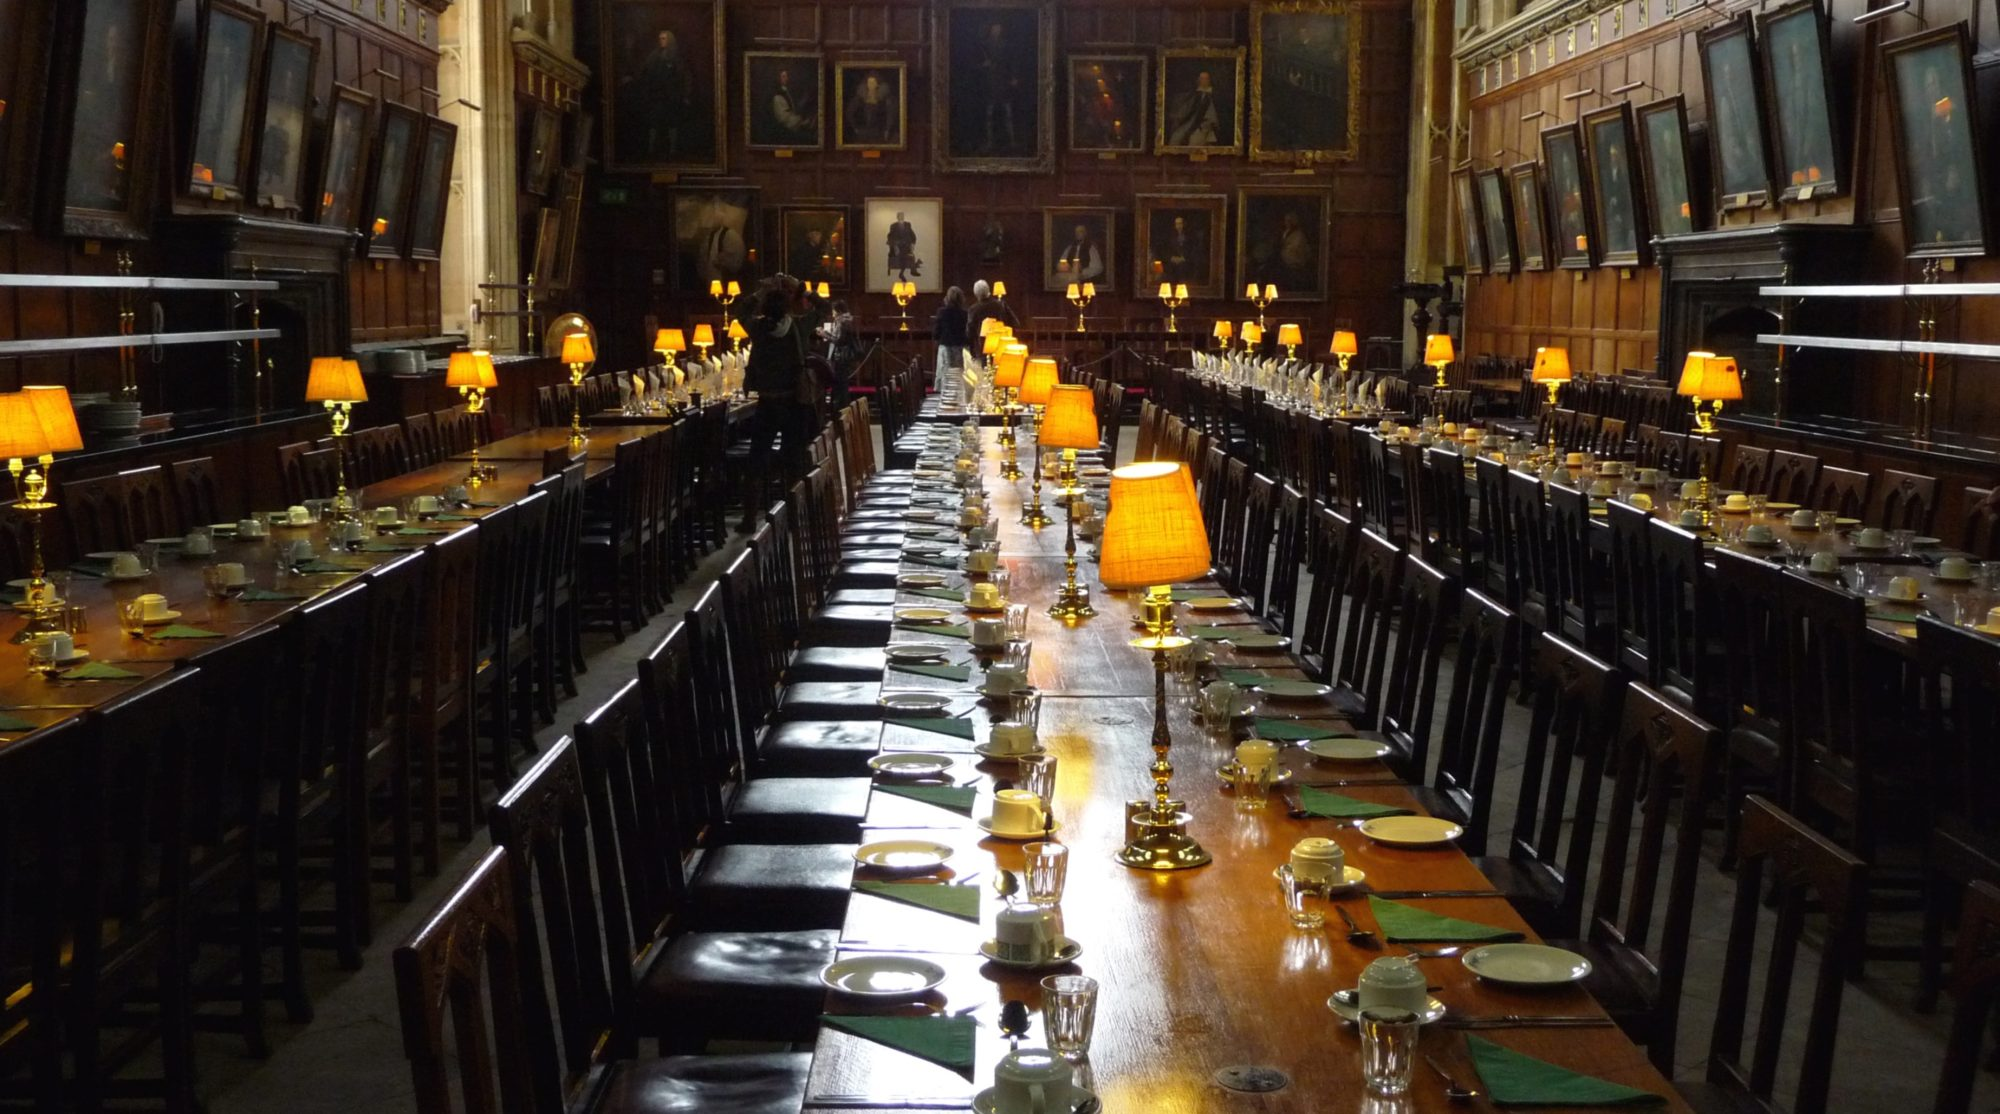 Oxford_-_Hall_of_Christ_Church Harry Potter dining hall